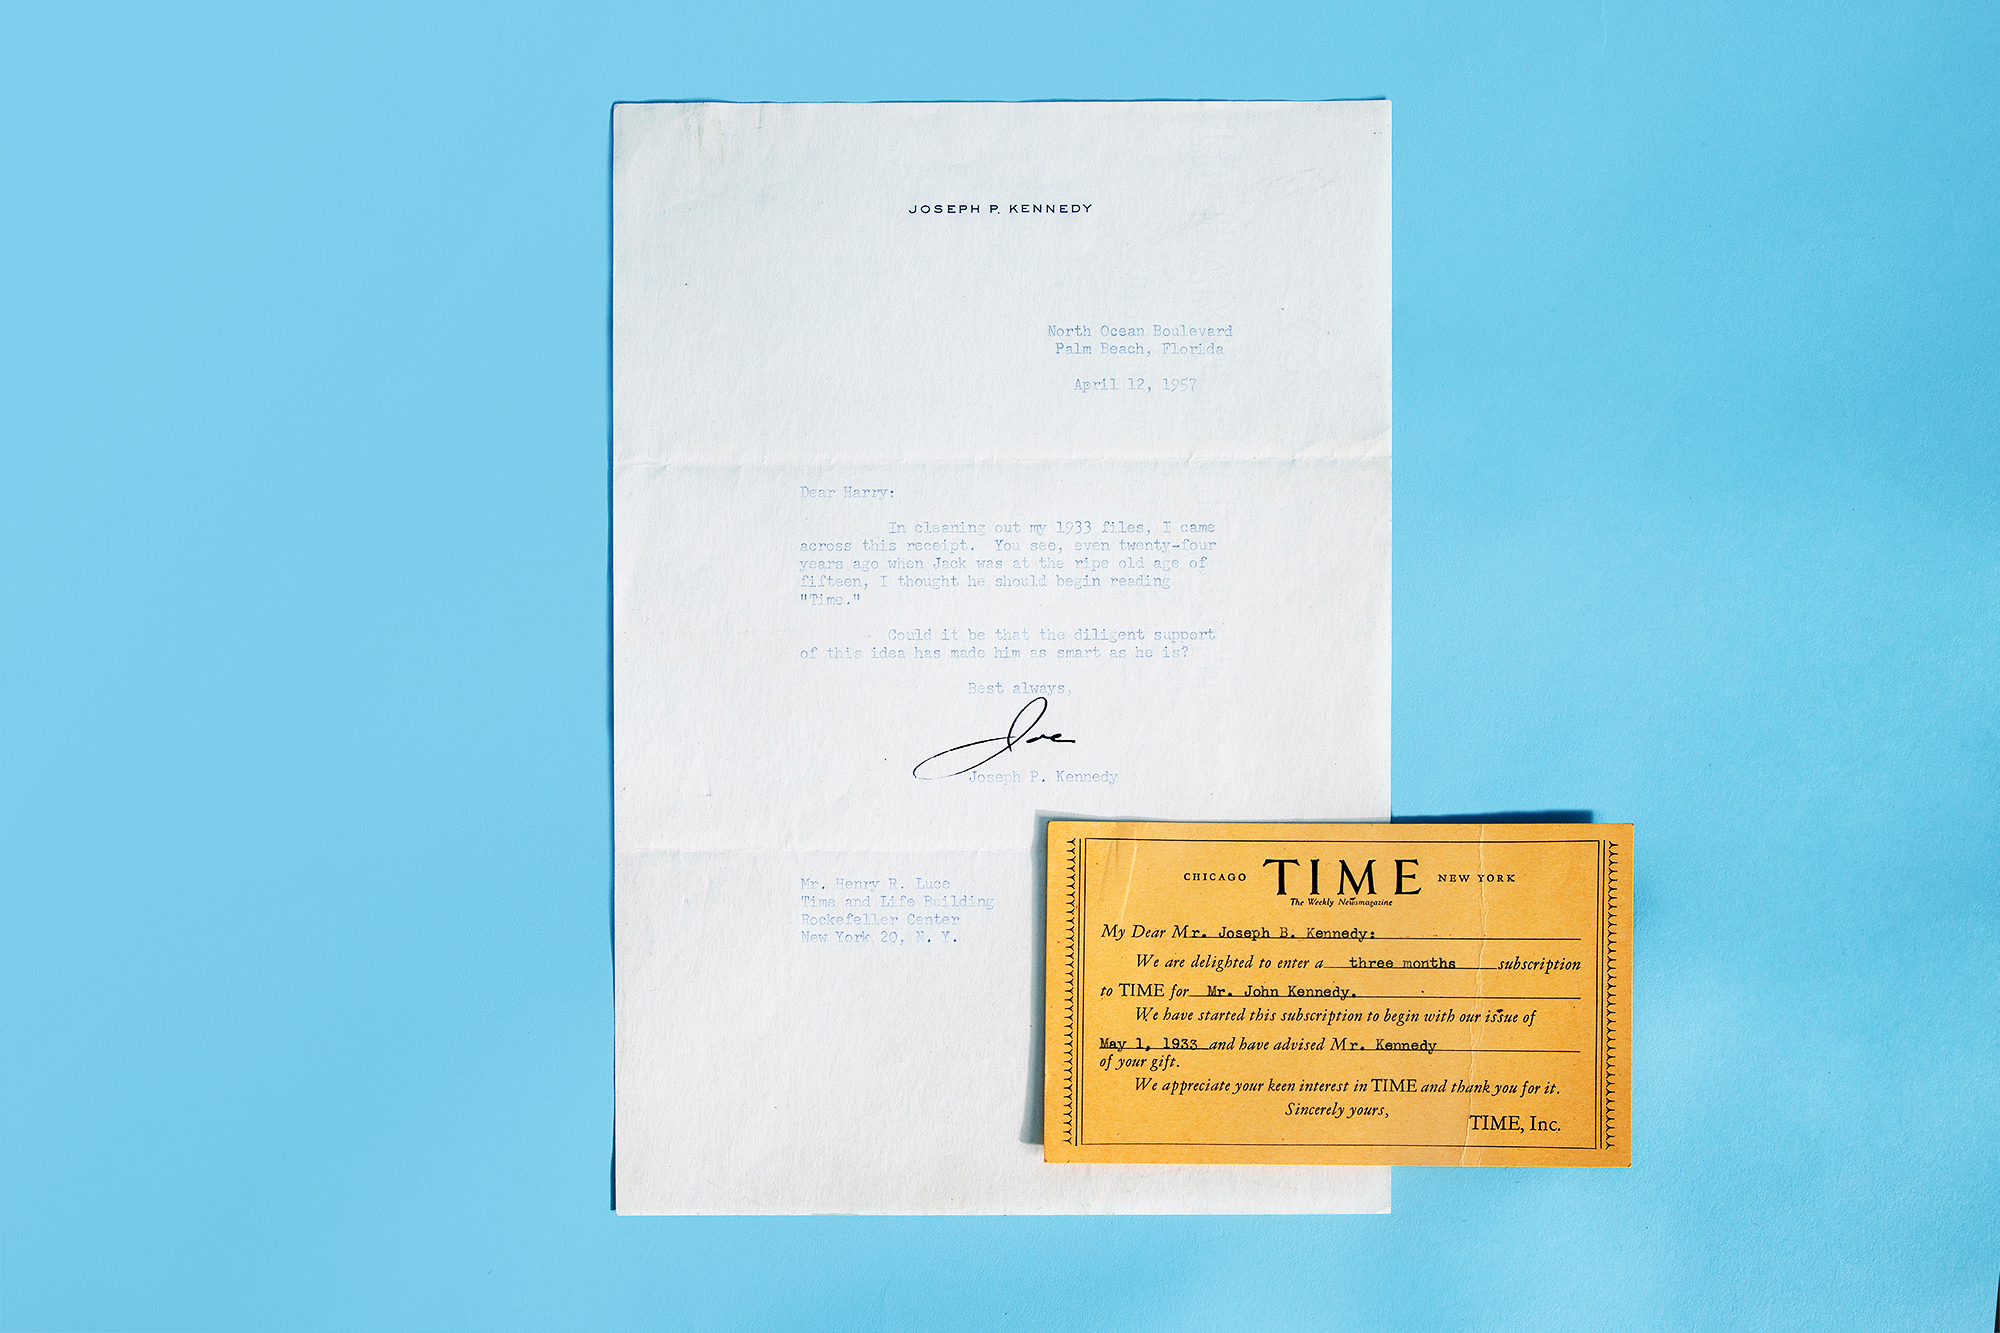 """John F. Kennedy TIME Subscription: Joe Kennedy, father of President John F. Kennedy, sent a letter to Luce in 1957 with a gift subscription receipt enclosed. Kennedy wrote, """"You see, even twenty-four years ago when Jack was at the ripe old age of fifteen, I thought he should begin reading 'Time.' Could it be that the diligent support of this idea has made him as smart as he is?"""""""